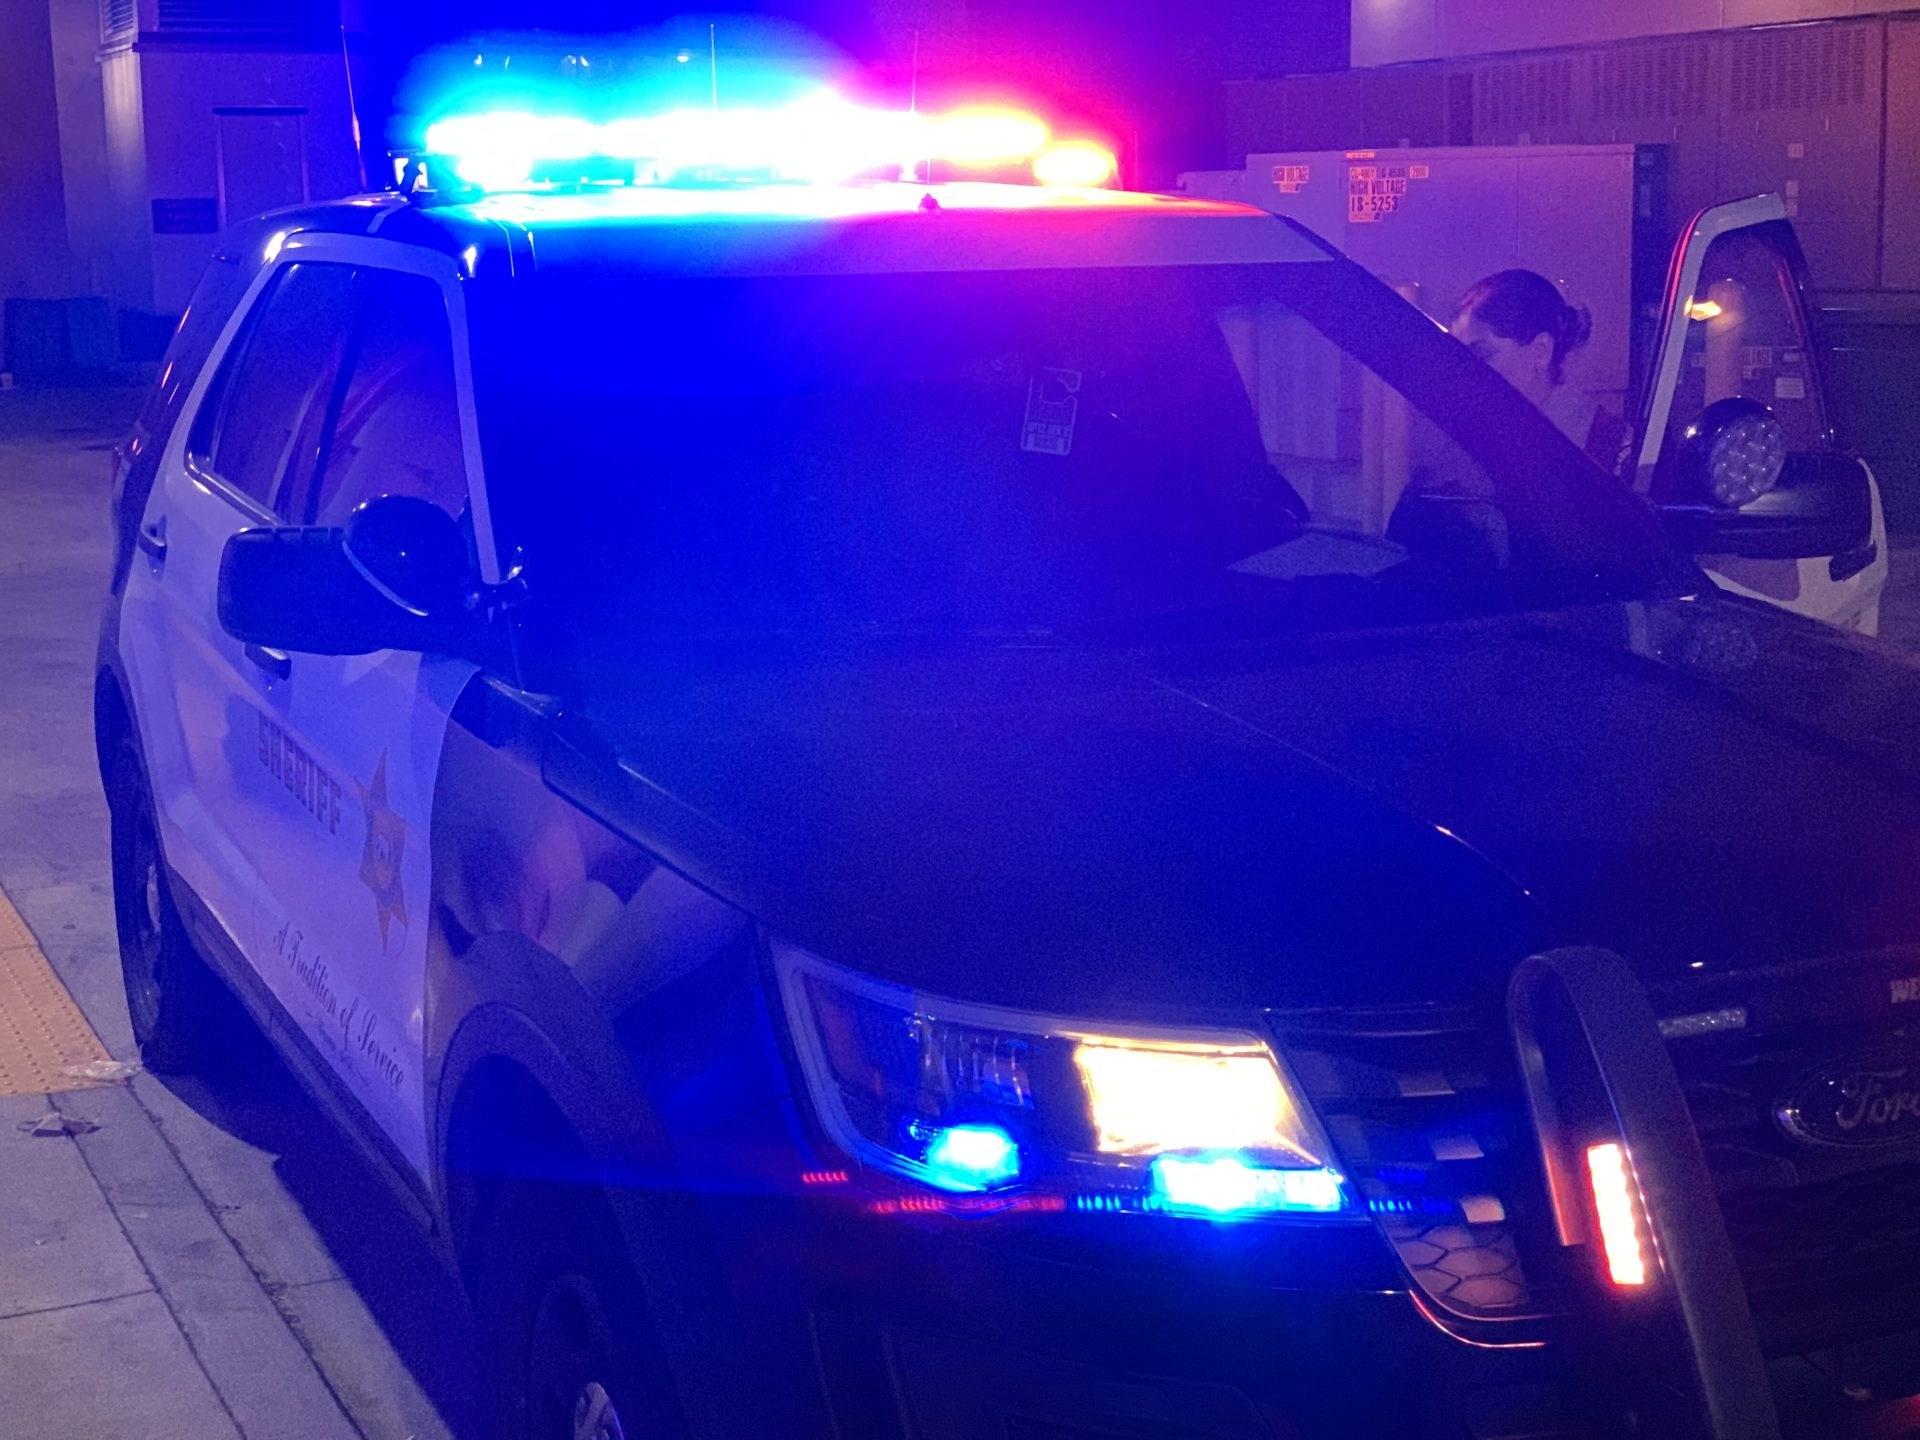 Patrol car with red lights on